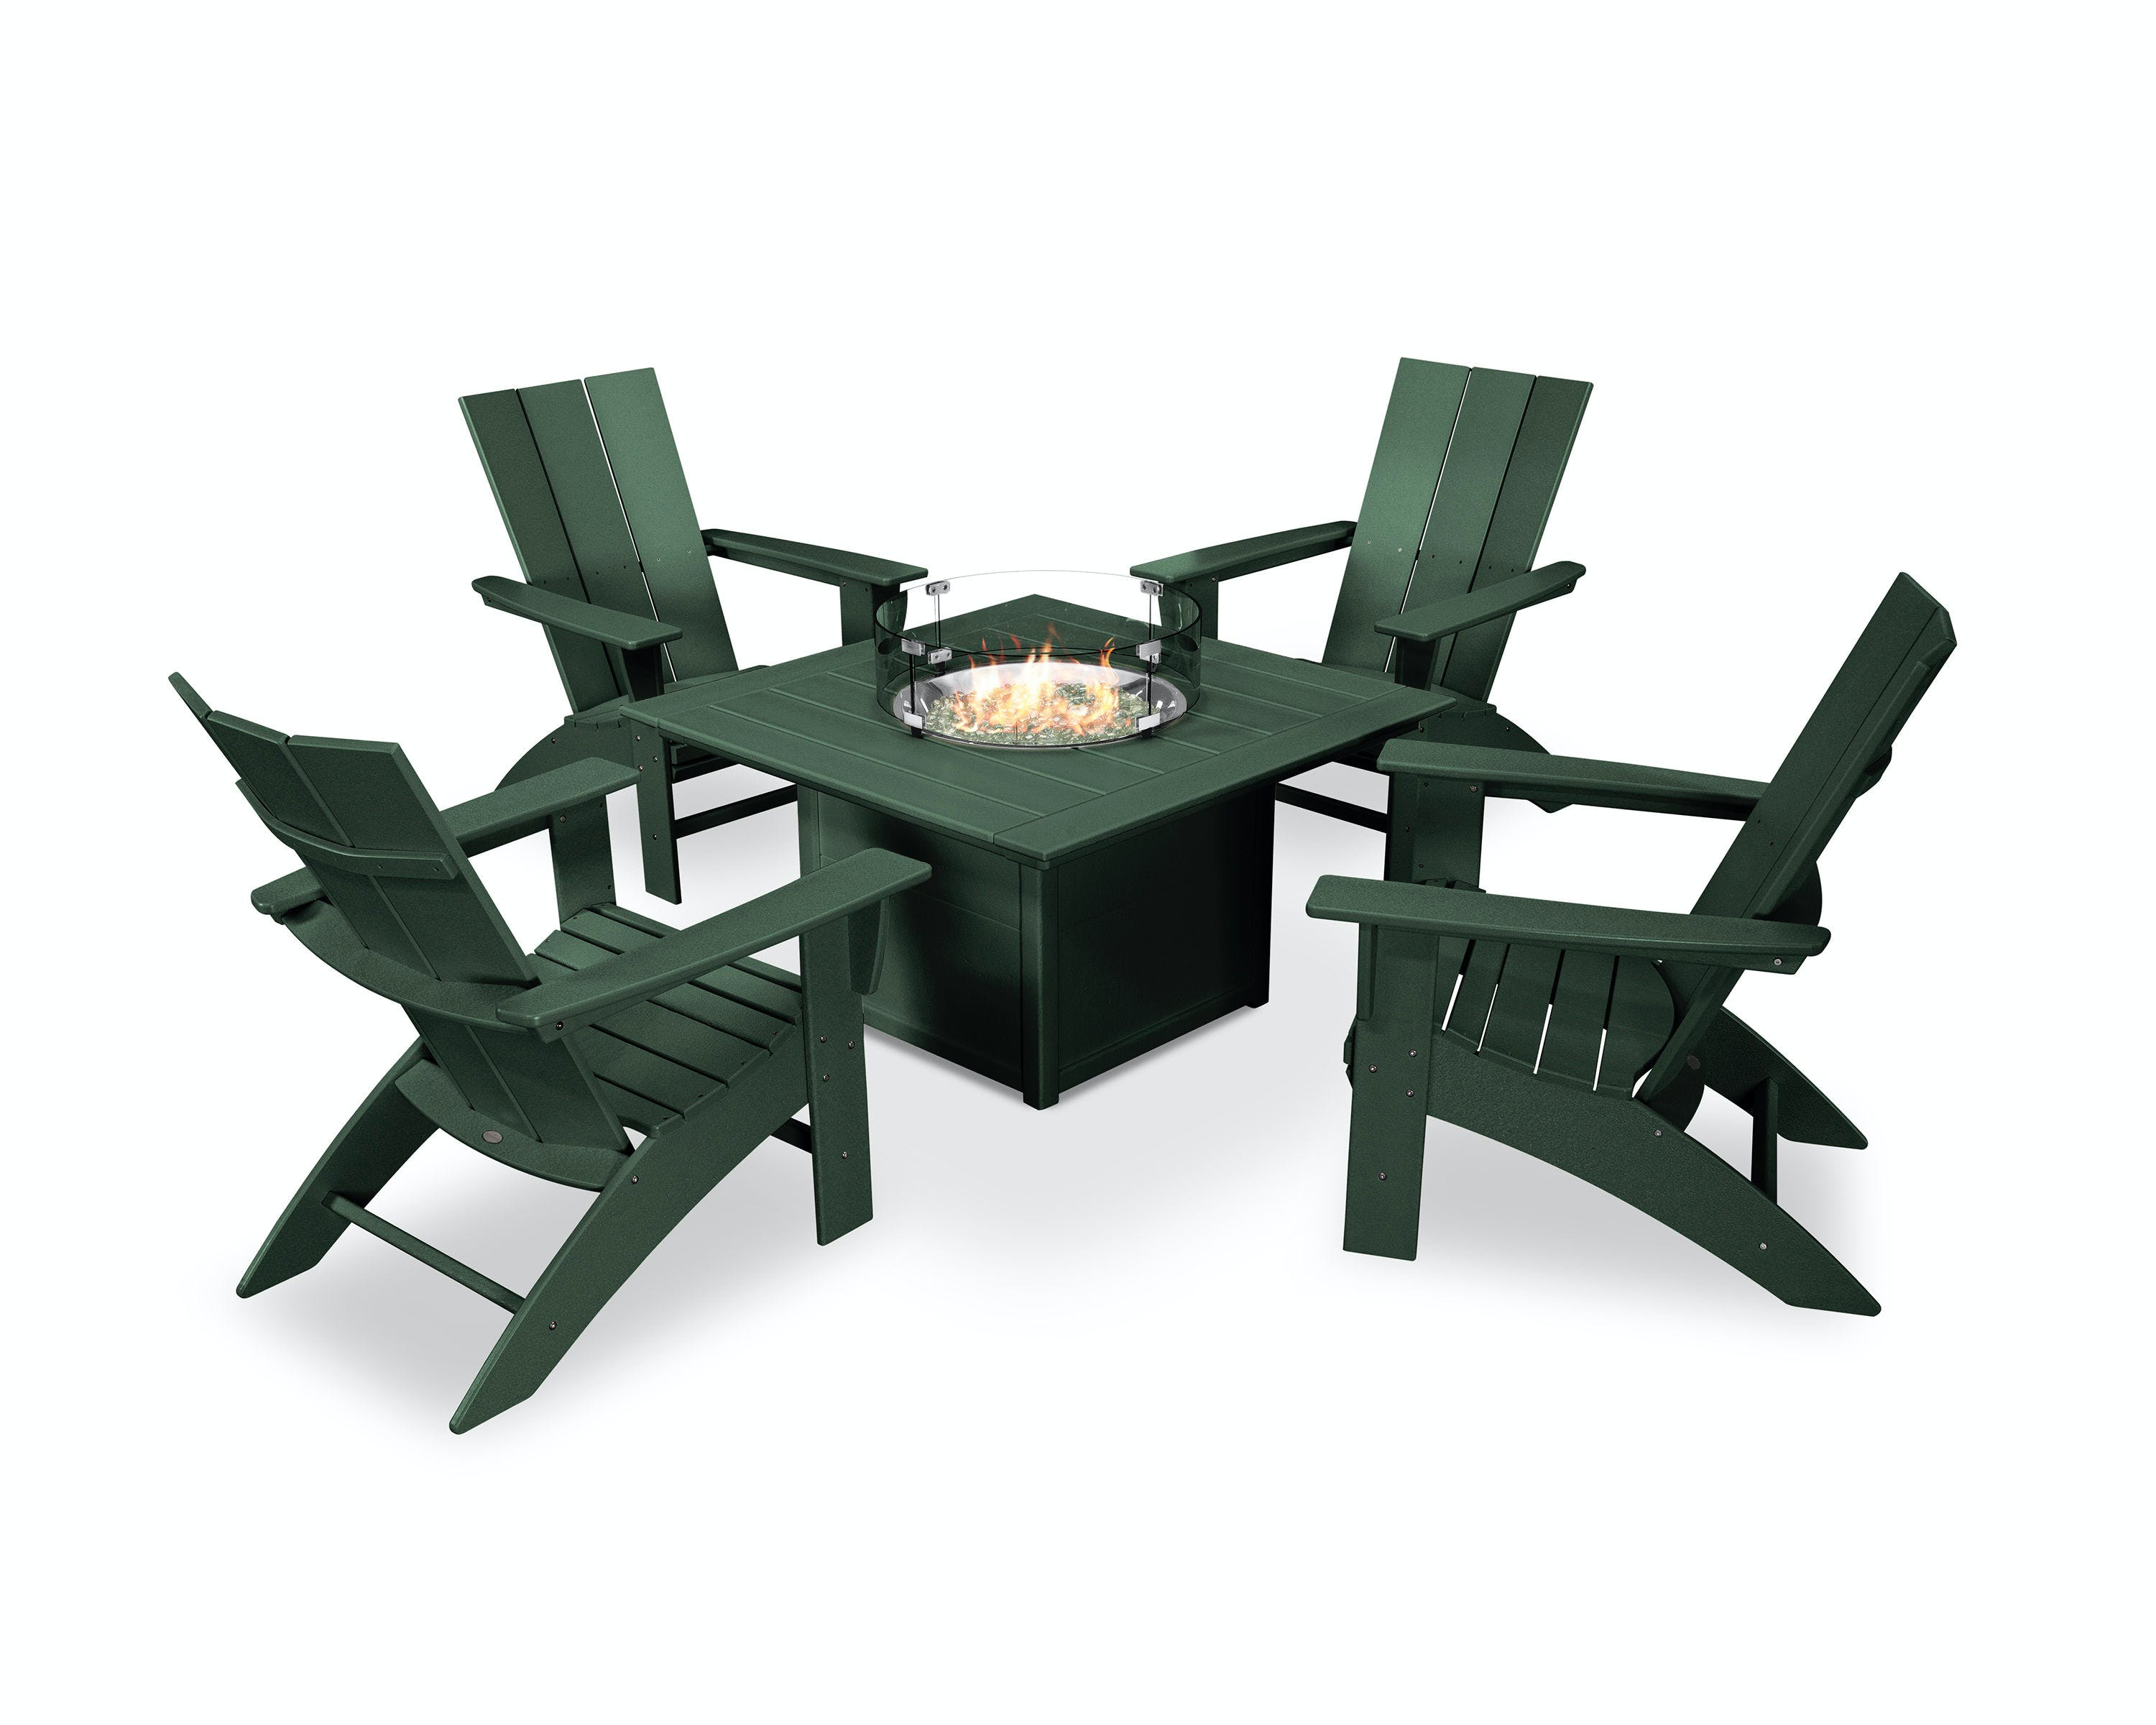 Image of: Modern Curveback Adirondack 5 Piece Conversation Set With Fire Pit Table